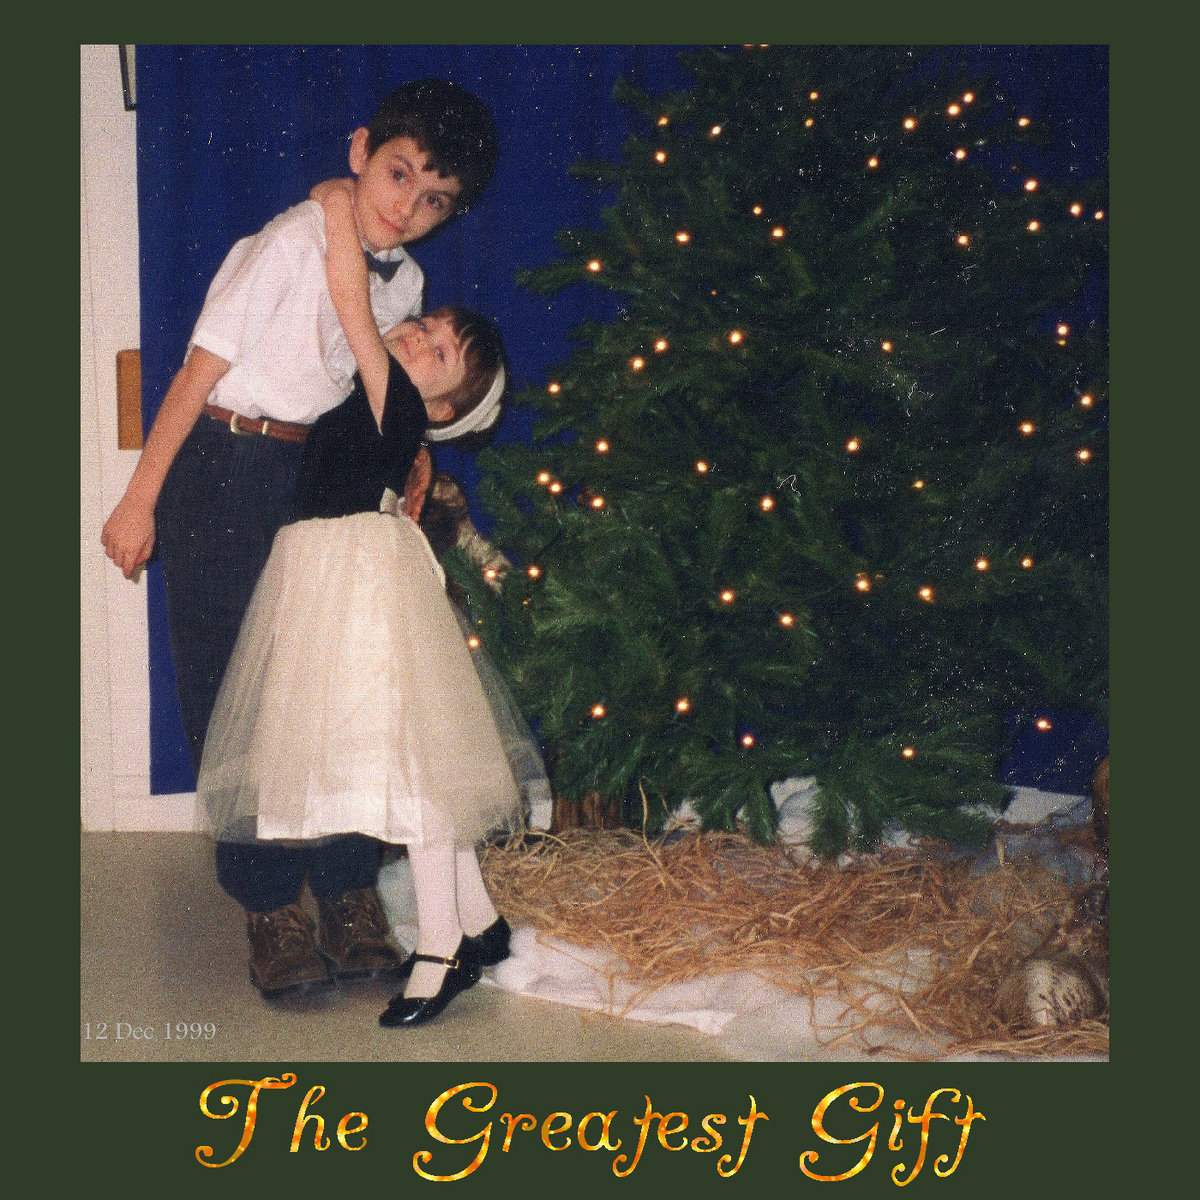 The Greatest Gift by Just Micci